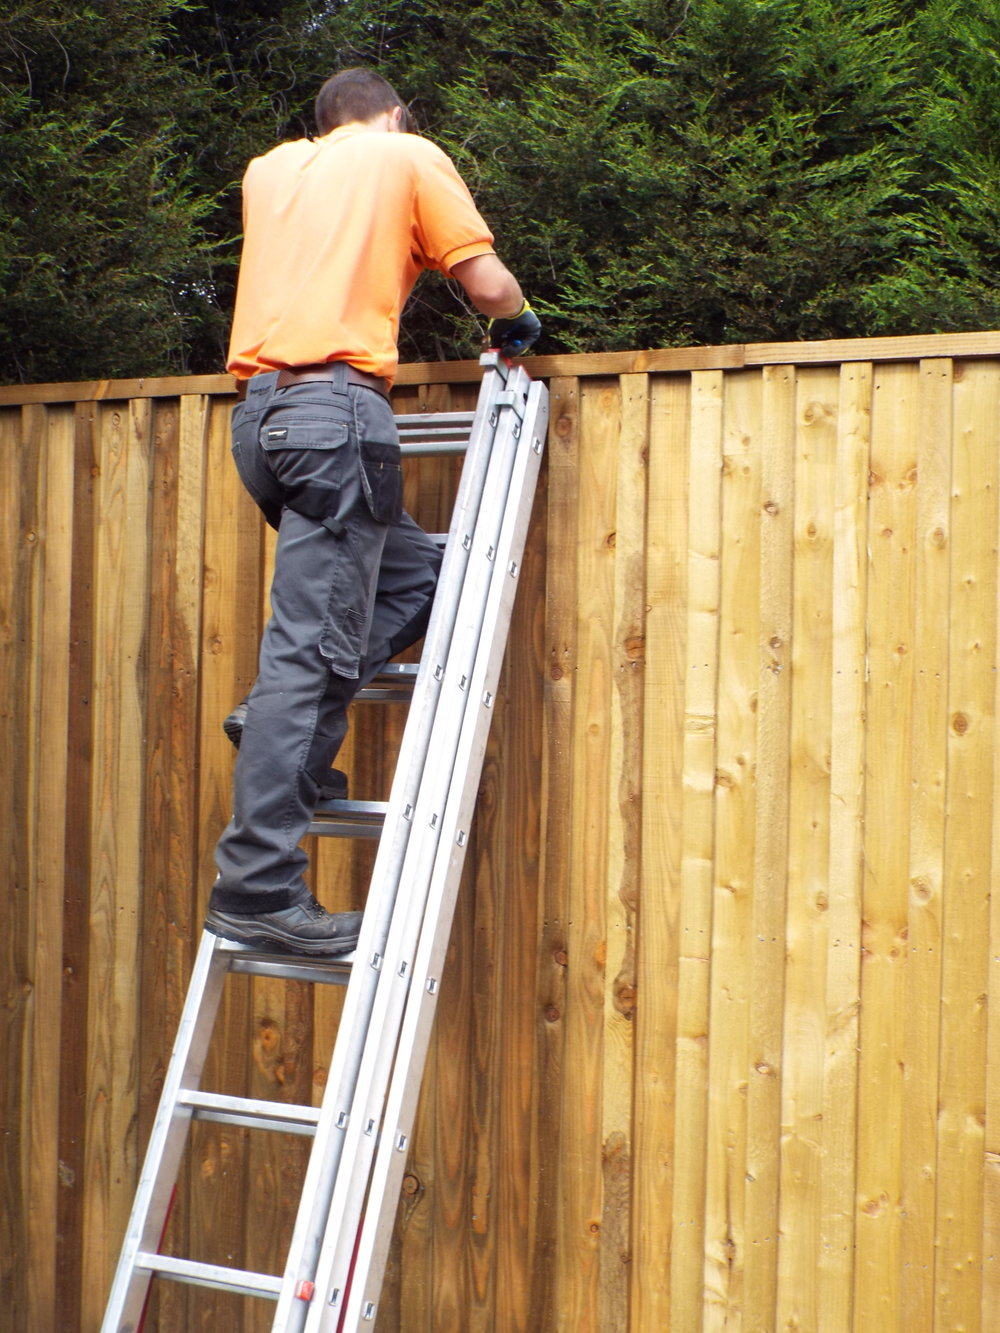 Man on a ladder installing a new garden fence